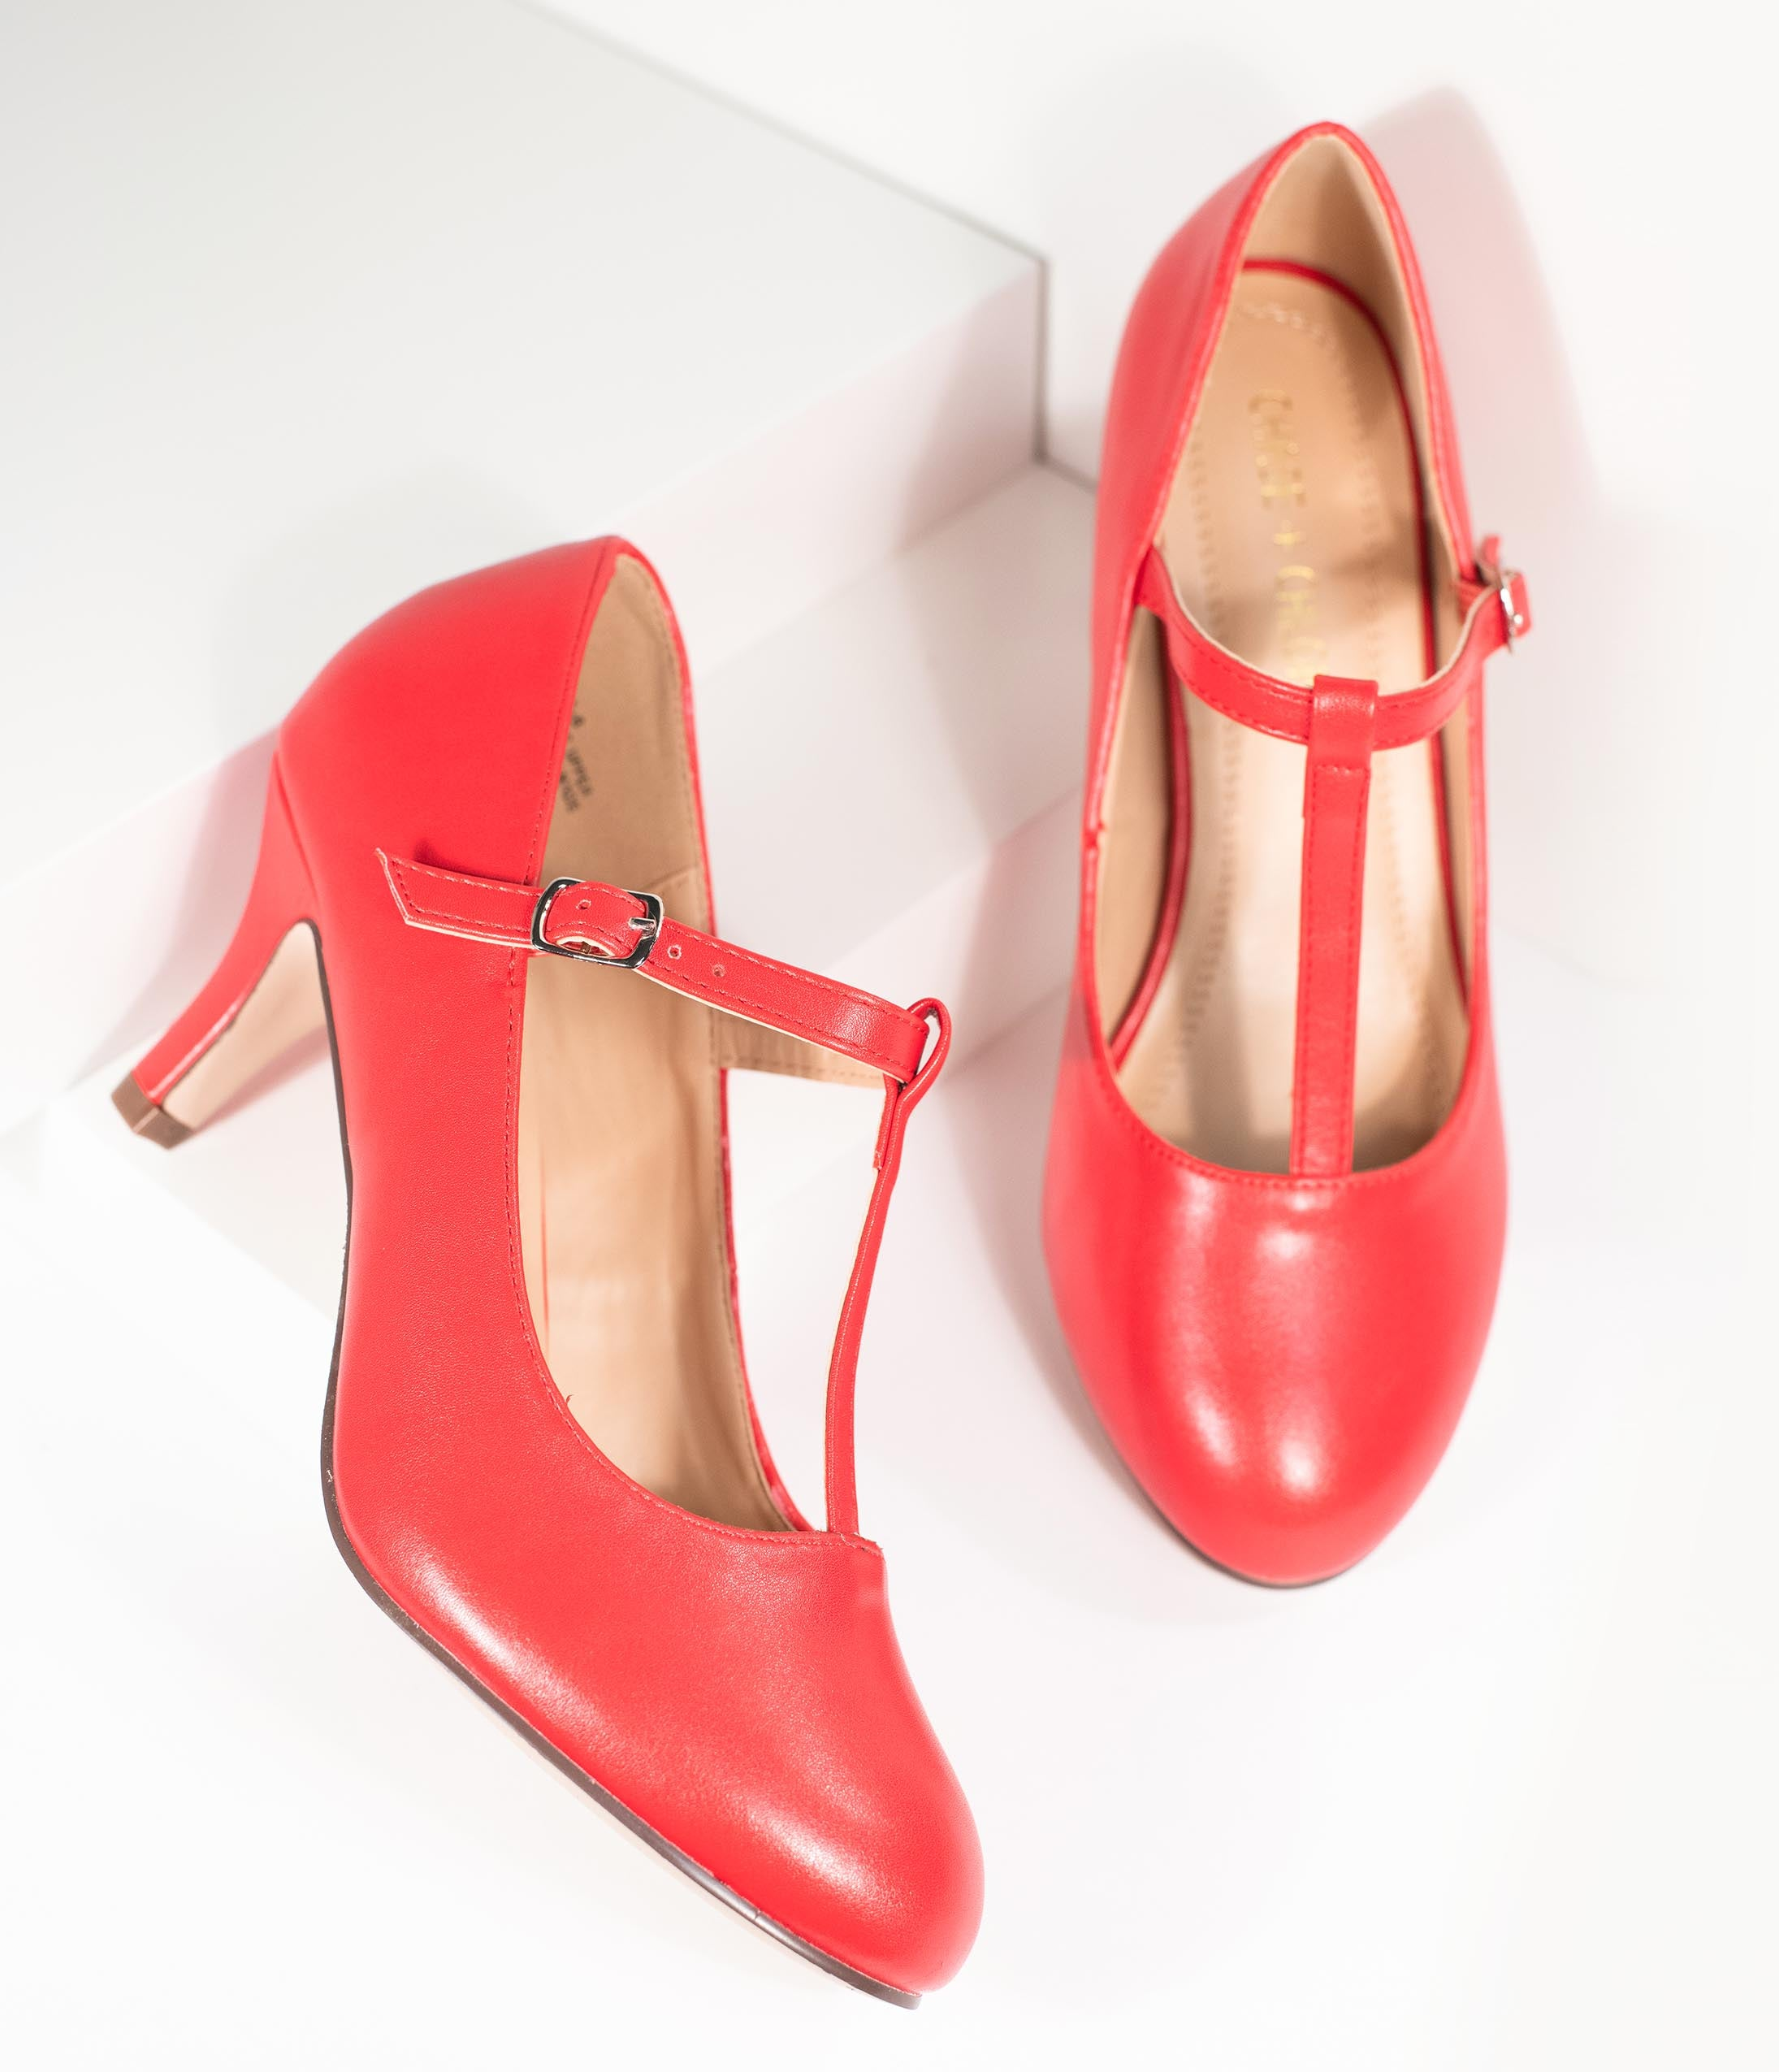 1950s Shoe Styles: Heels, Flats, Sandals, Saddles Shoes Vintage Style Red Leatherette T-Strap Heels $42.00 AT vintagedancer.com